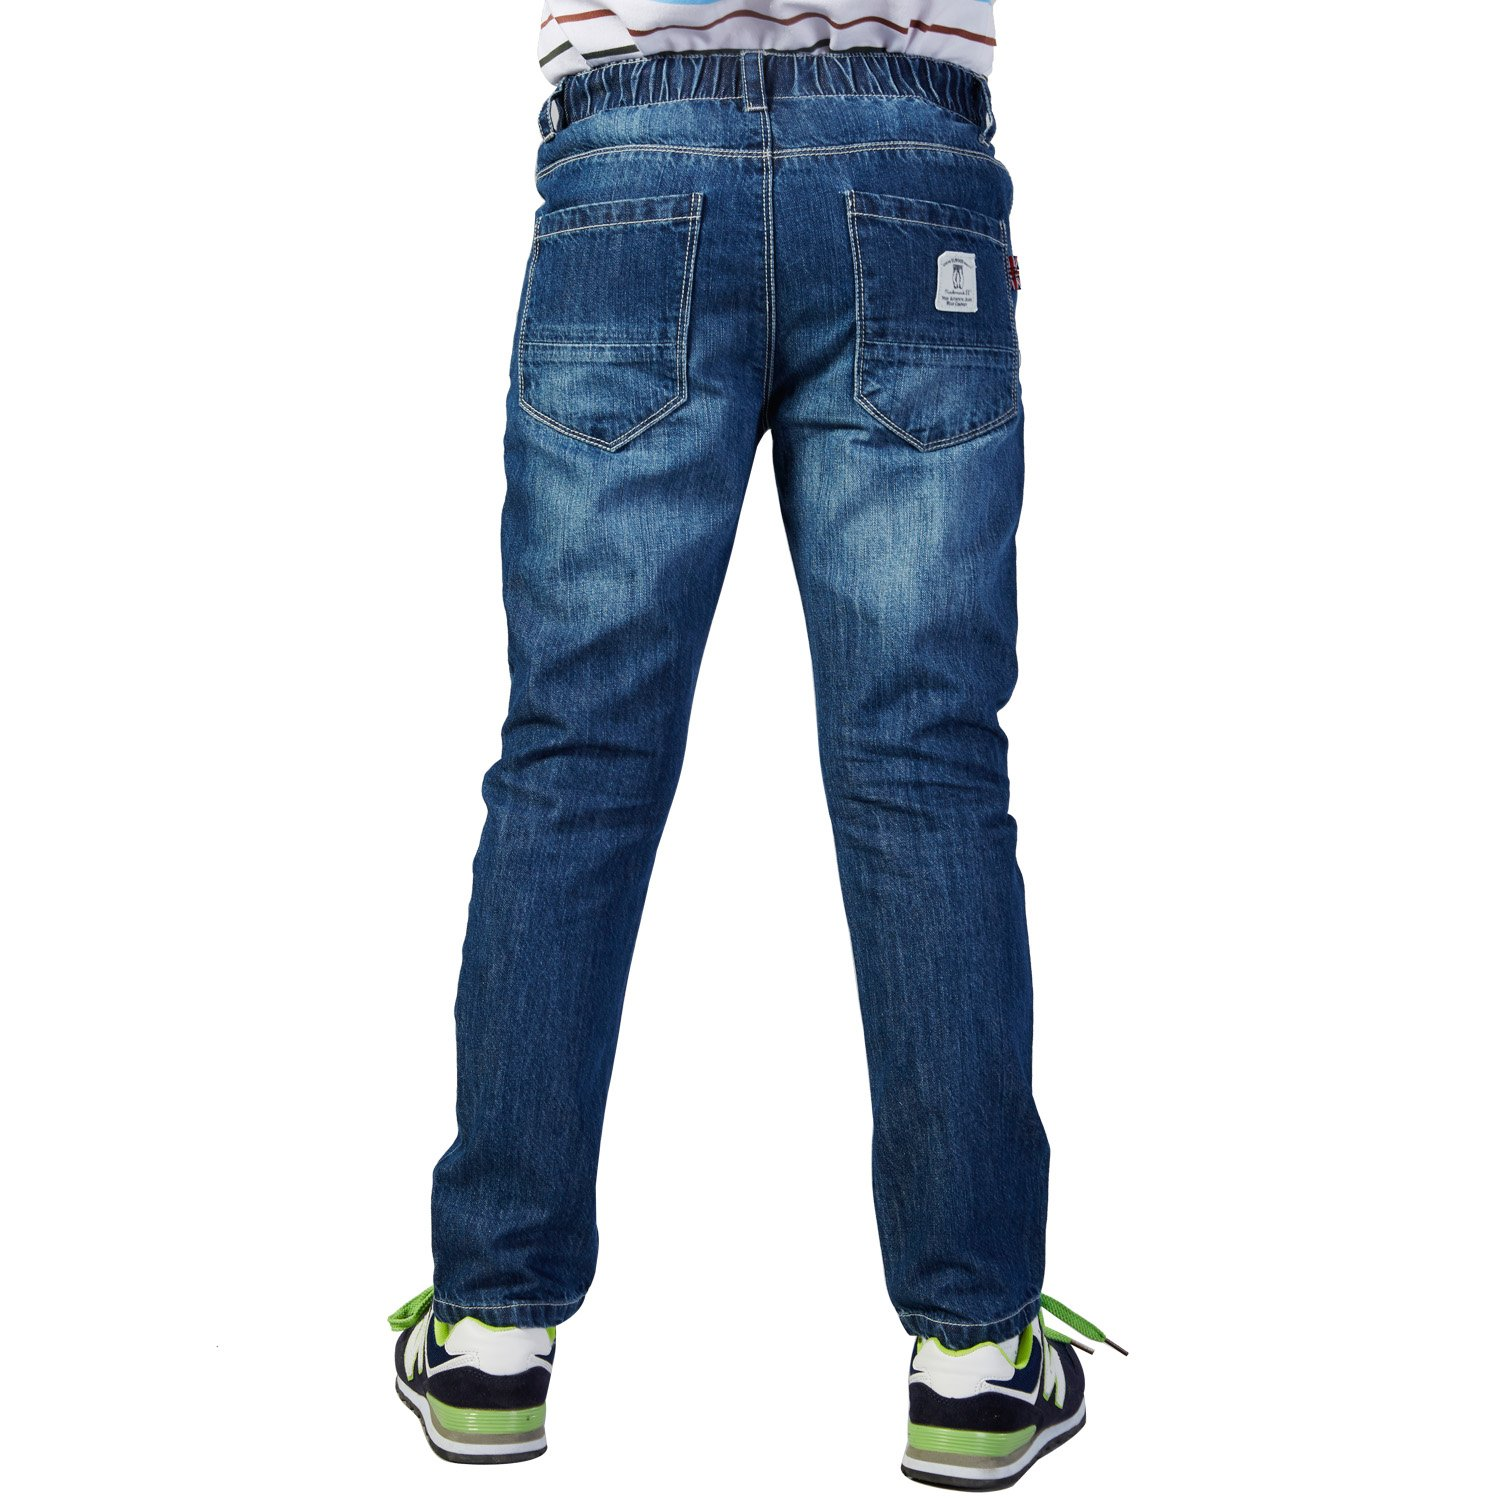 Leo&Lily Big Boys' LLB632-8-Dark Blue-Mfn, Dark Blue, 8